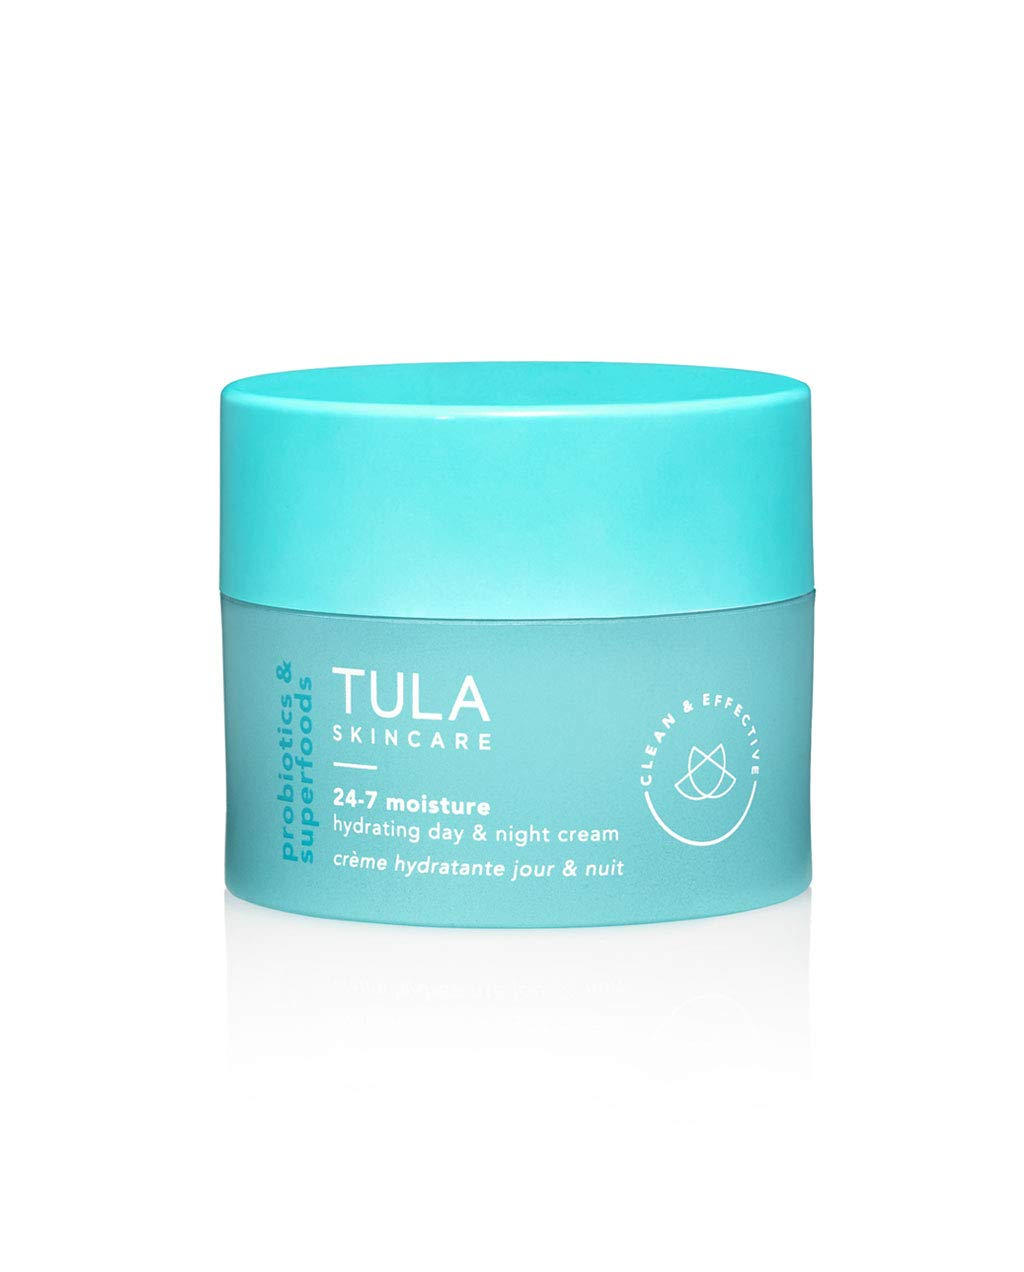 TULA Probiotic Skin Care 24-7 Moisture Hydrating Day and Night Cream   Moisturizer for Face, Anti Aging Face Cream, Contains Watermelon Fruit and Blueberry Extract   1.5 oz